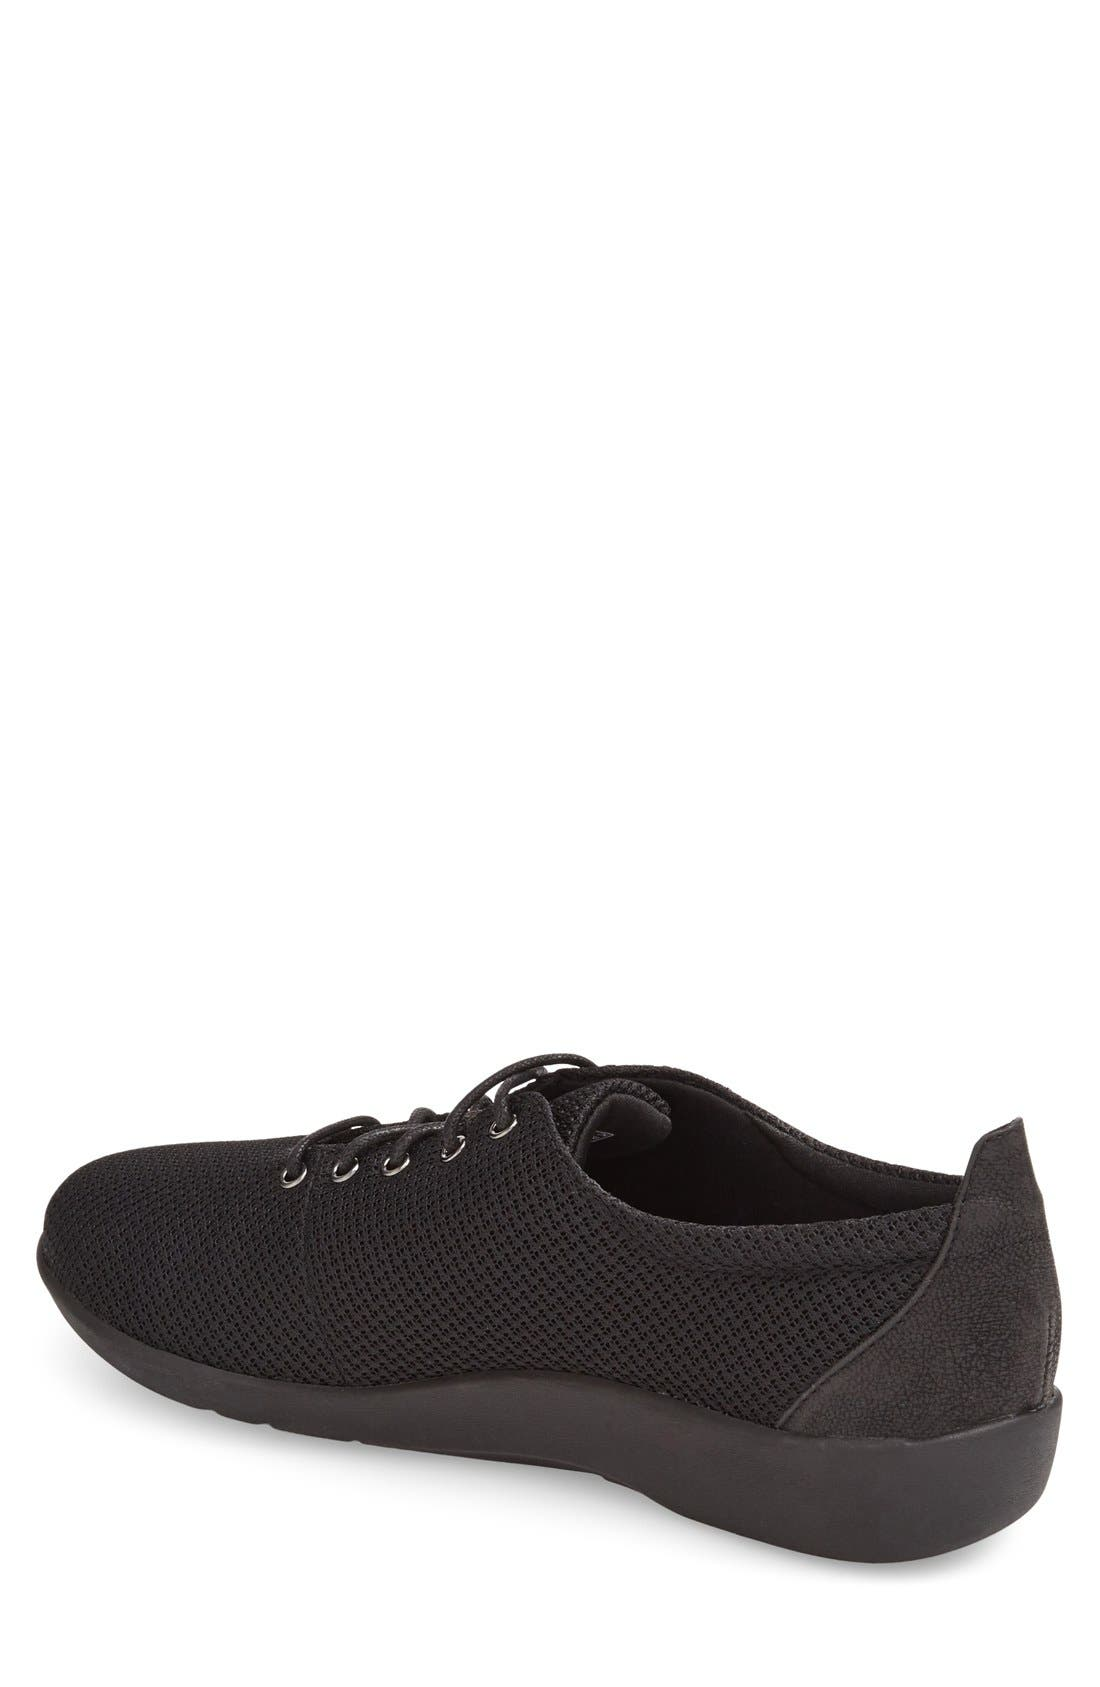 Clarks<sup>®</sup> 'Sillian - Tino' Sneaker,                             Alternate thumbnail 3, color,                             001